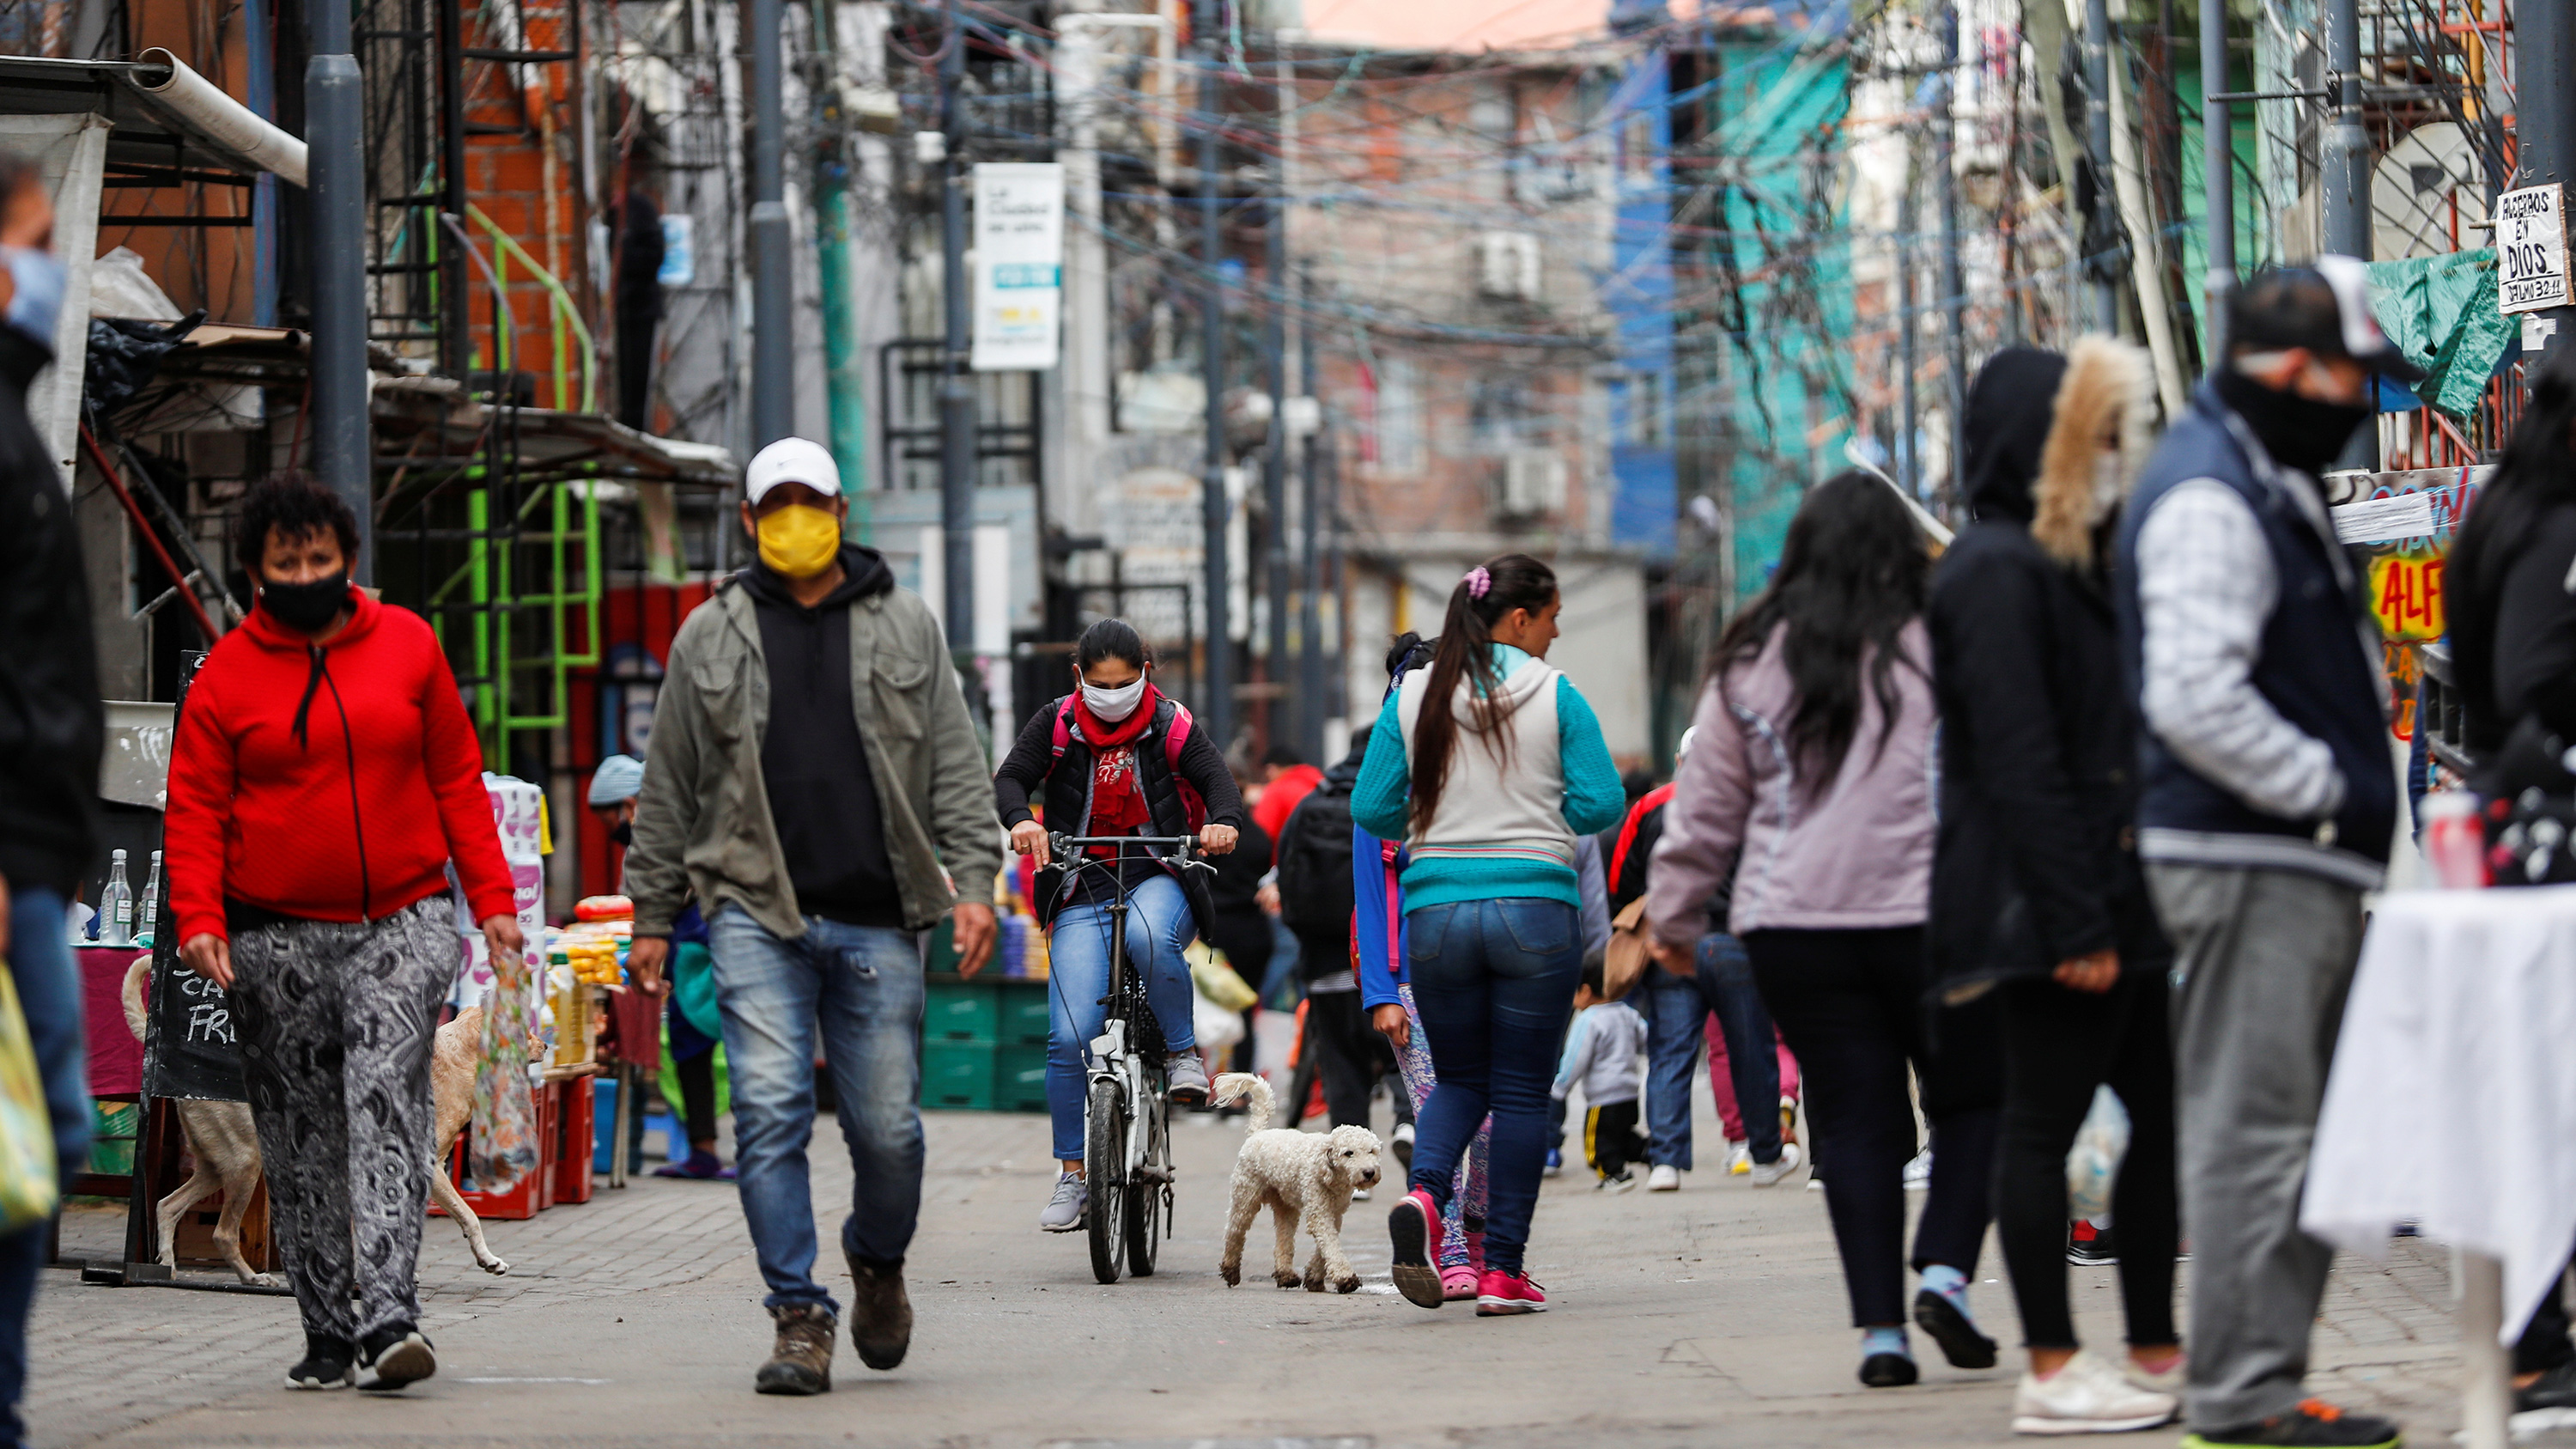 Picture shows a neighborhood street scene with lots of people wandering the streets wearing facemasks.